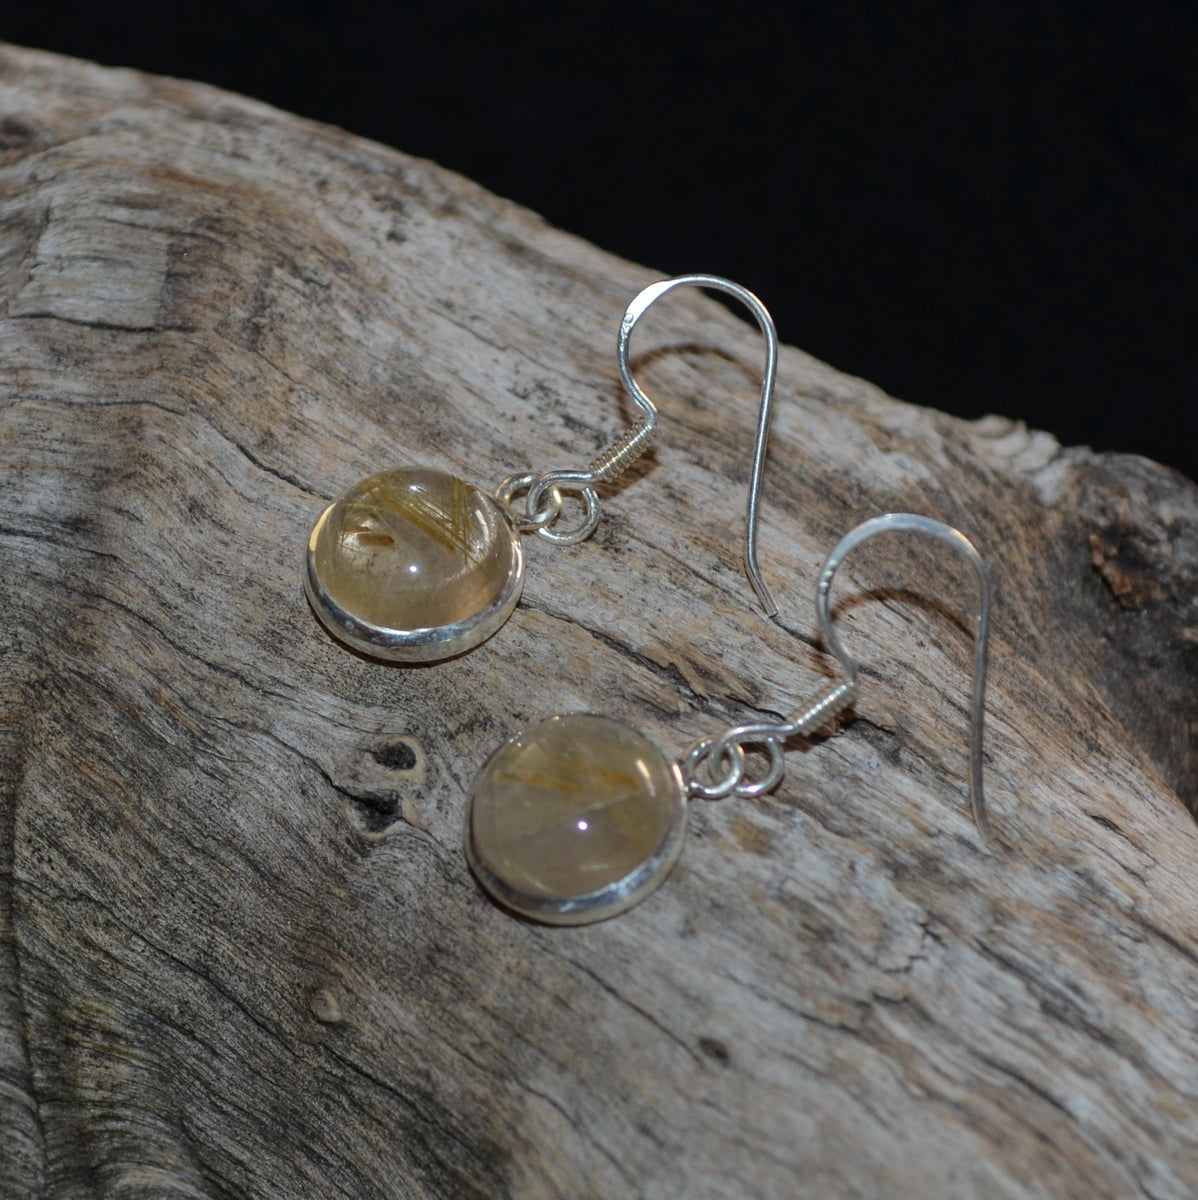 Golden Rutile Silver Earrings - Focus Manifestation Tuning - Available Now at Illiom Crystals - Afterpay Available